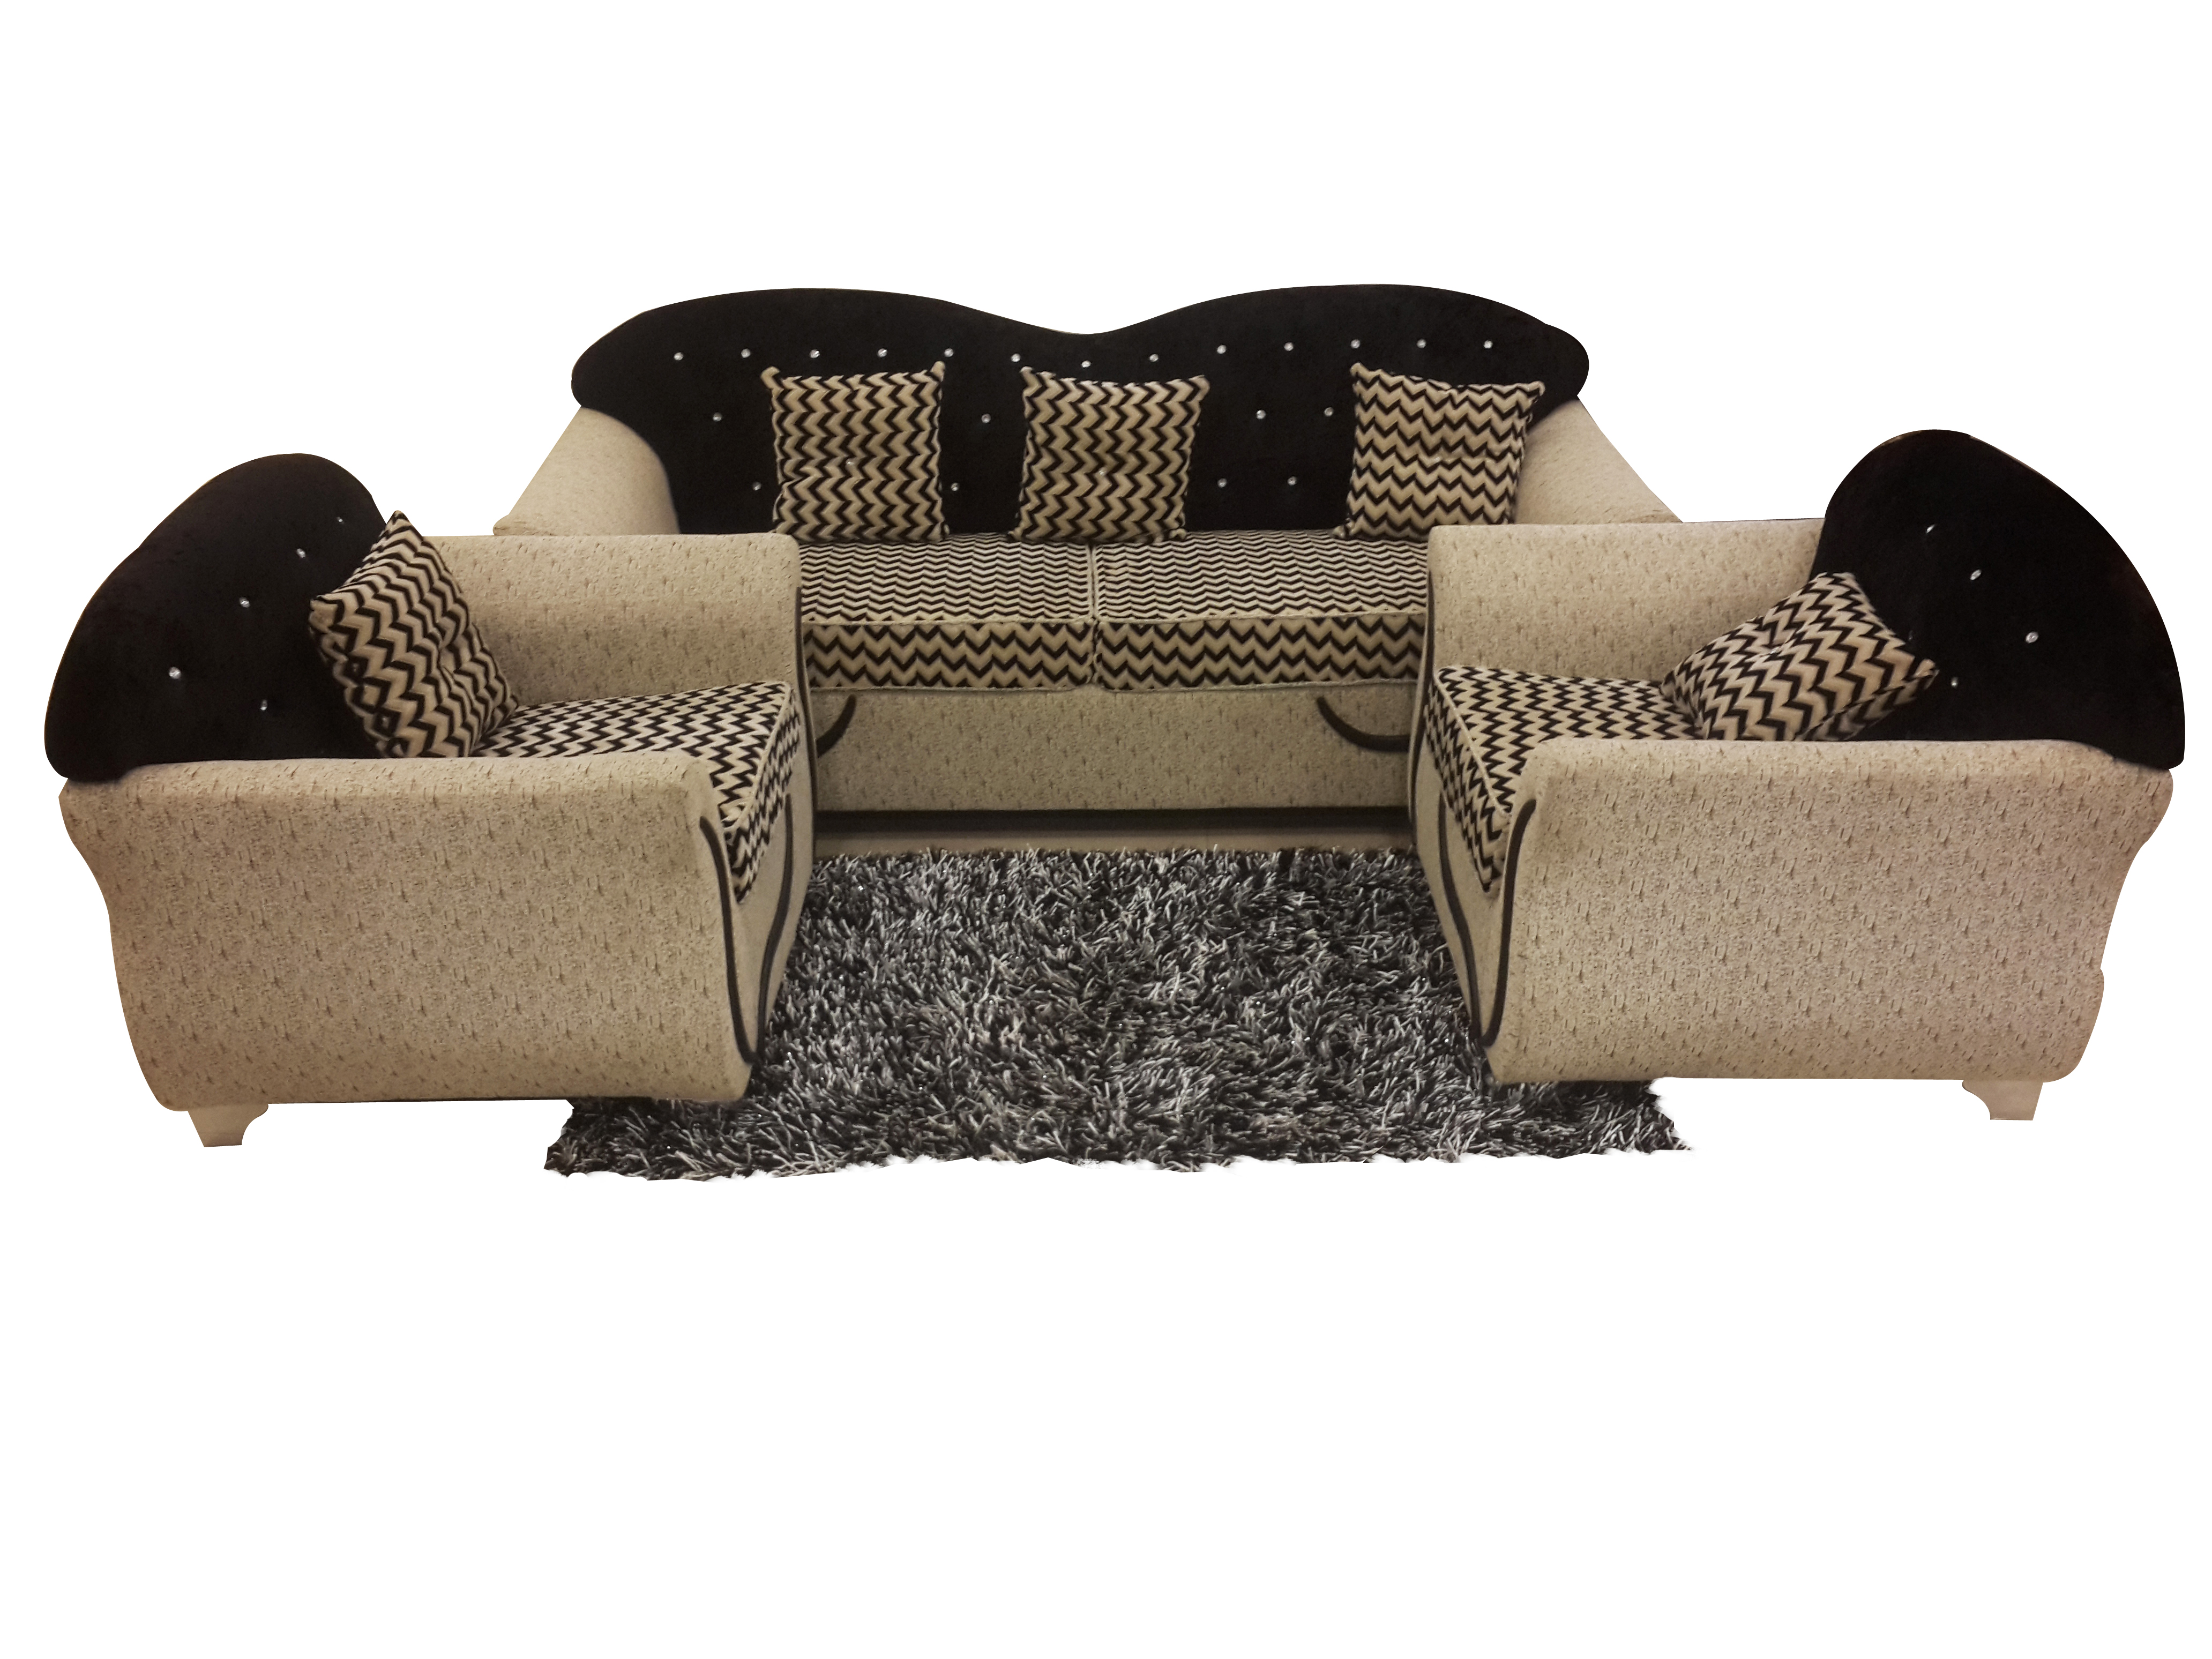 buy lumia 3 1 1 sofa set at onlinesofadesign. Black Bedroom Furniture Sets. Home Design Ideas